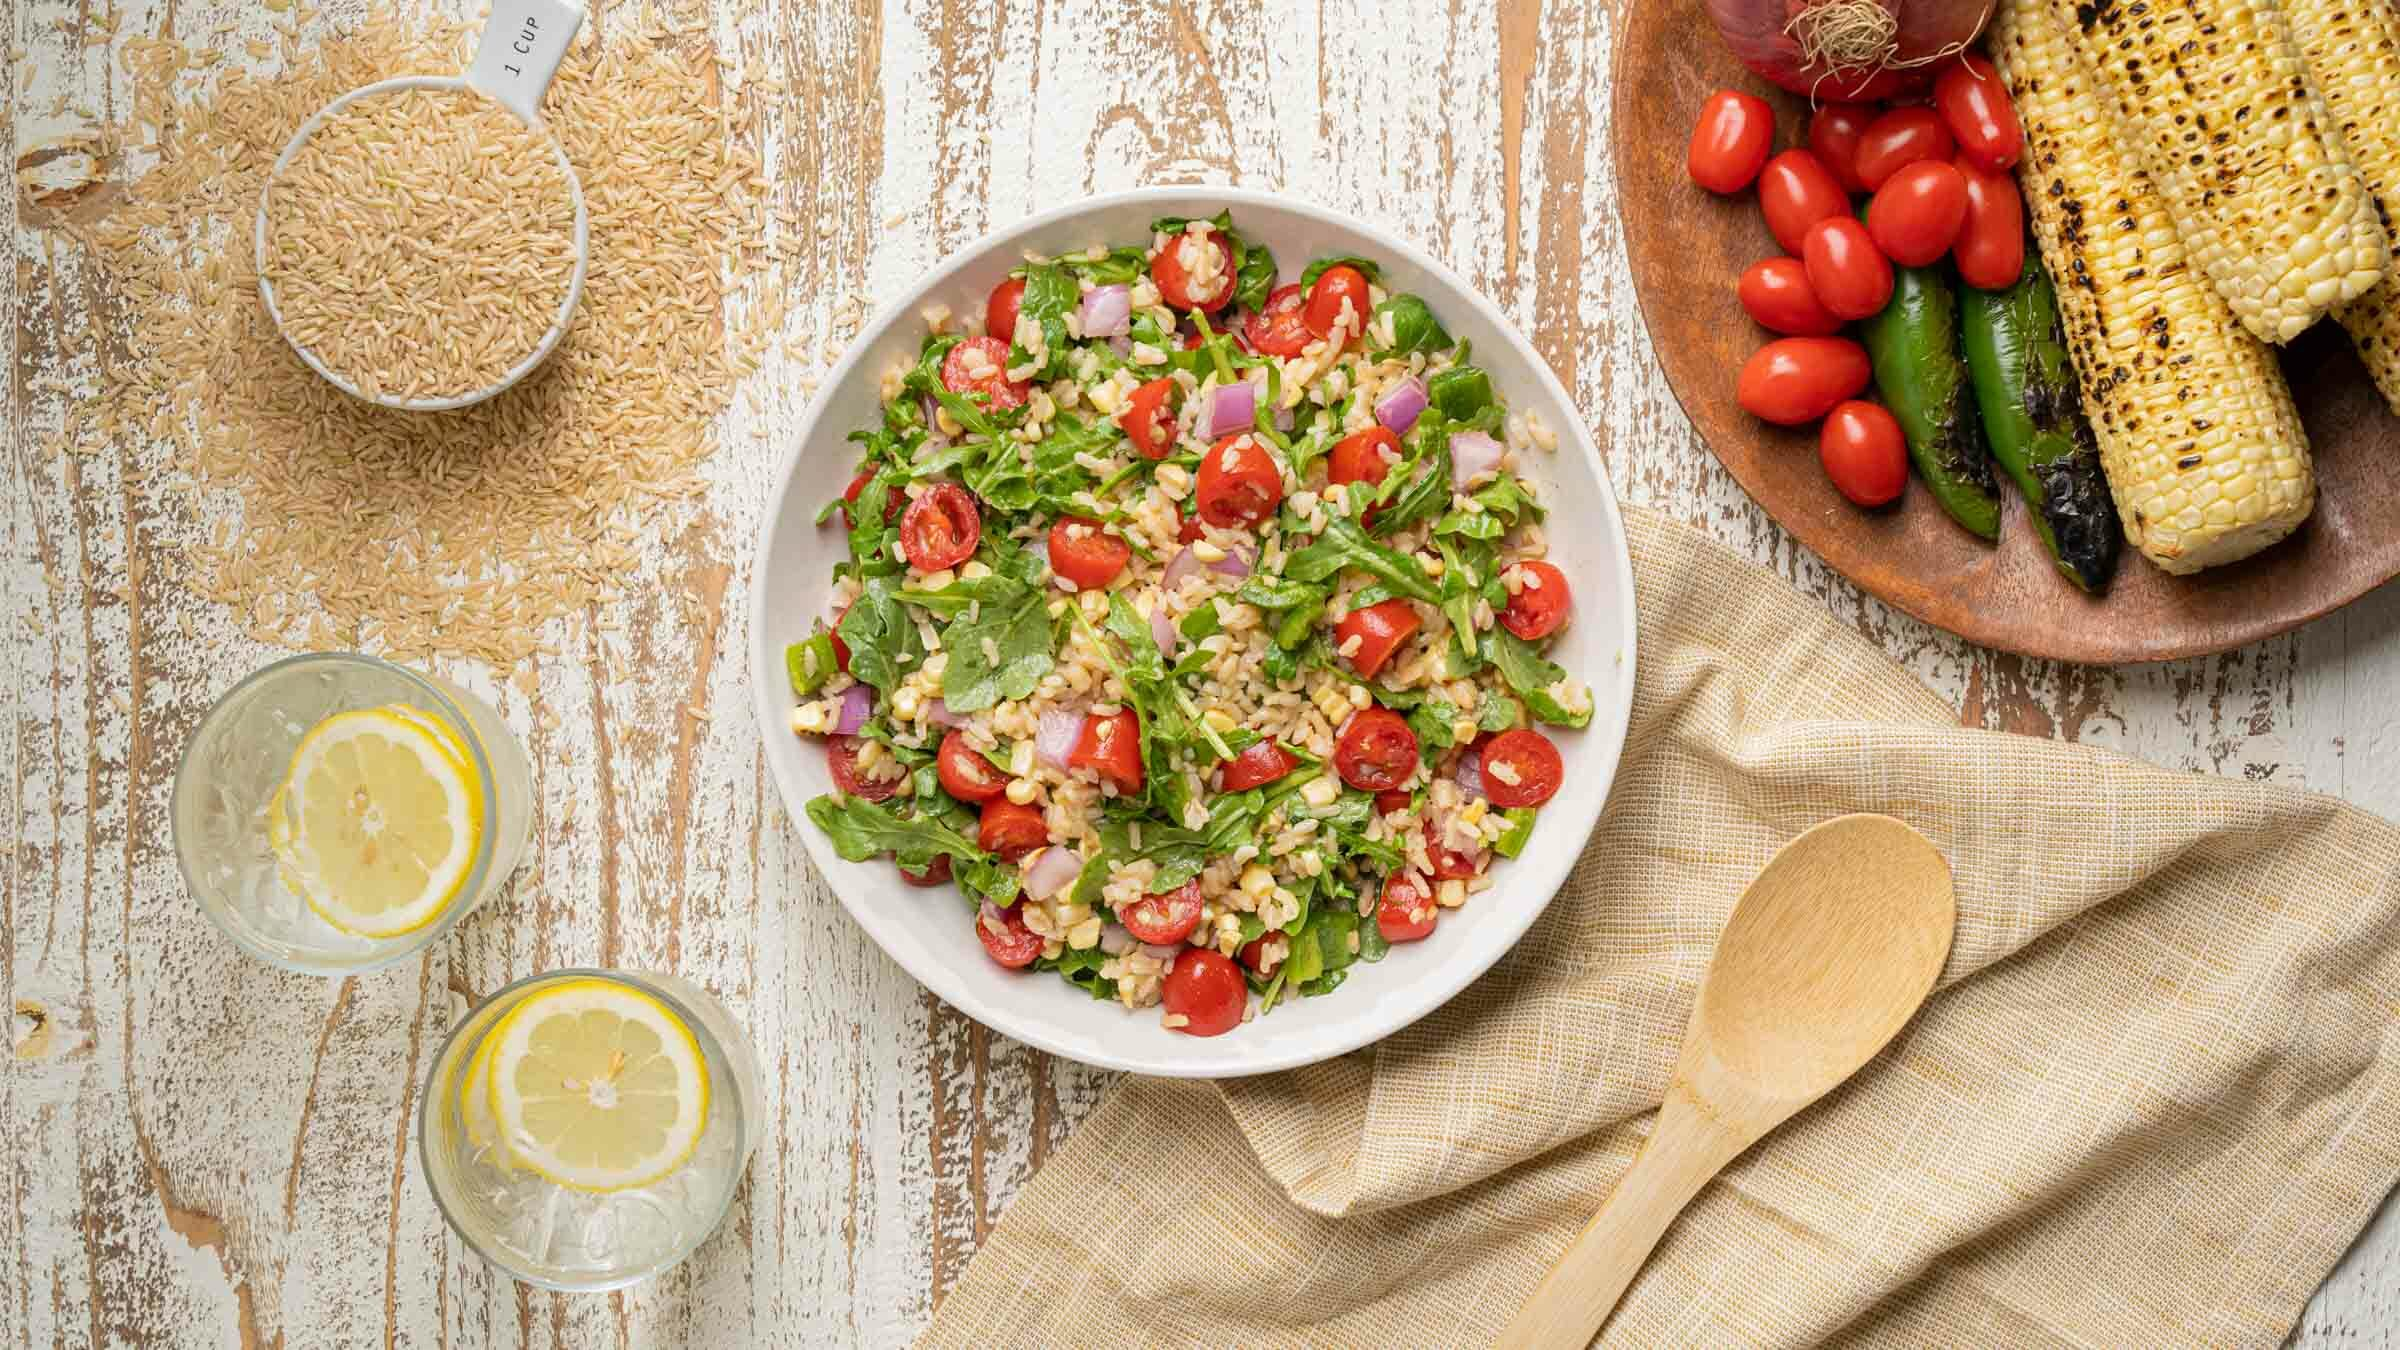 Summer Salad with corn, rice, onions, tomatoes and arugula in bowl.